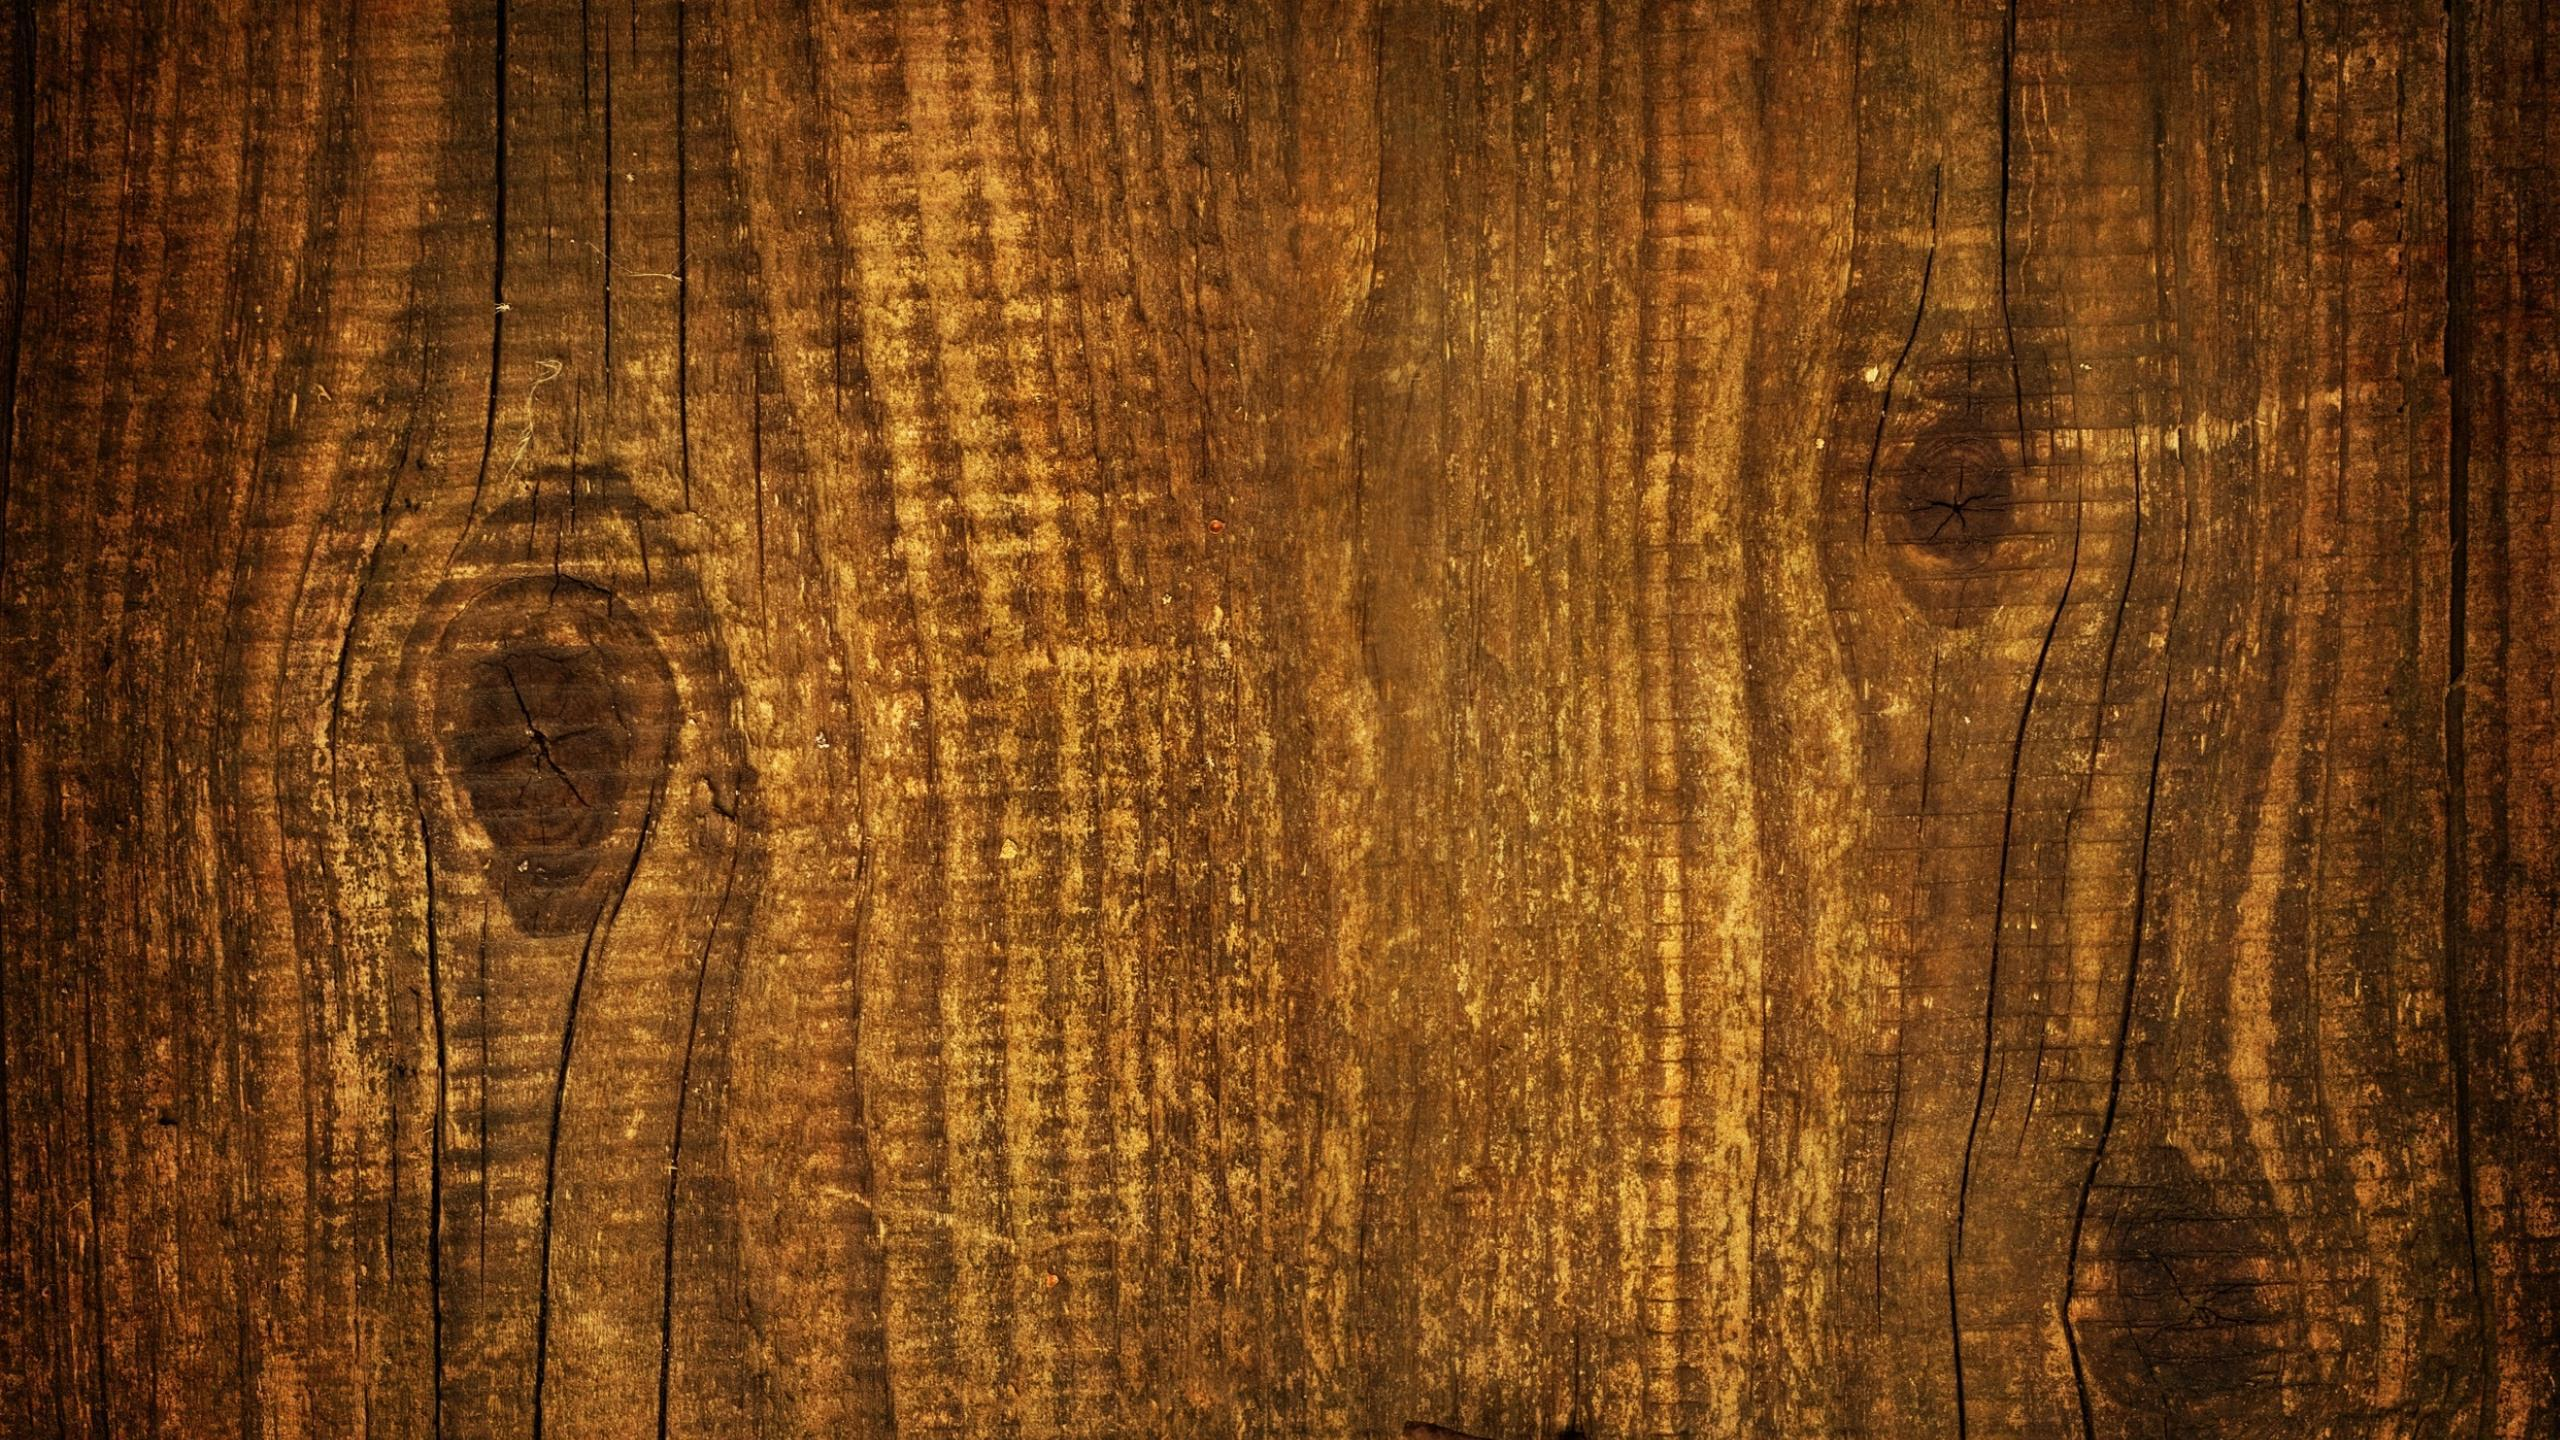 Wood Grain Wallpaper wood grain wallpaper 15235 2560x1440 px ~ hdwallsource